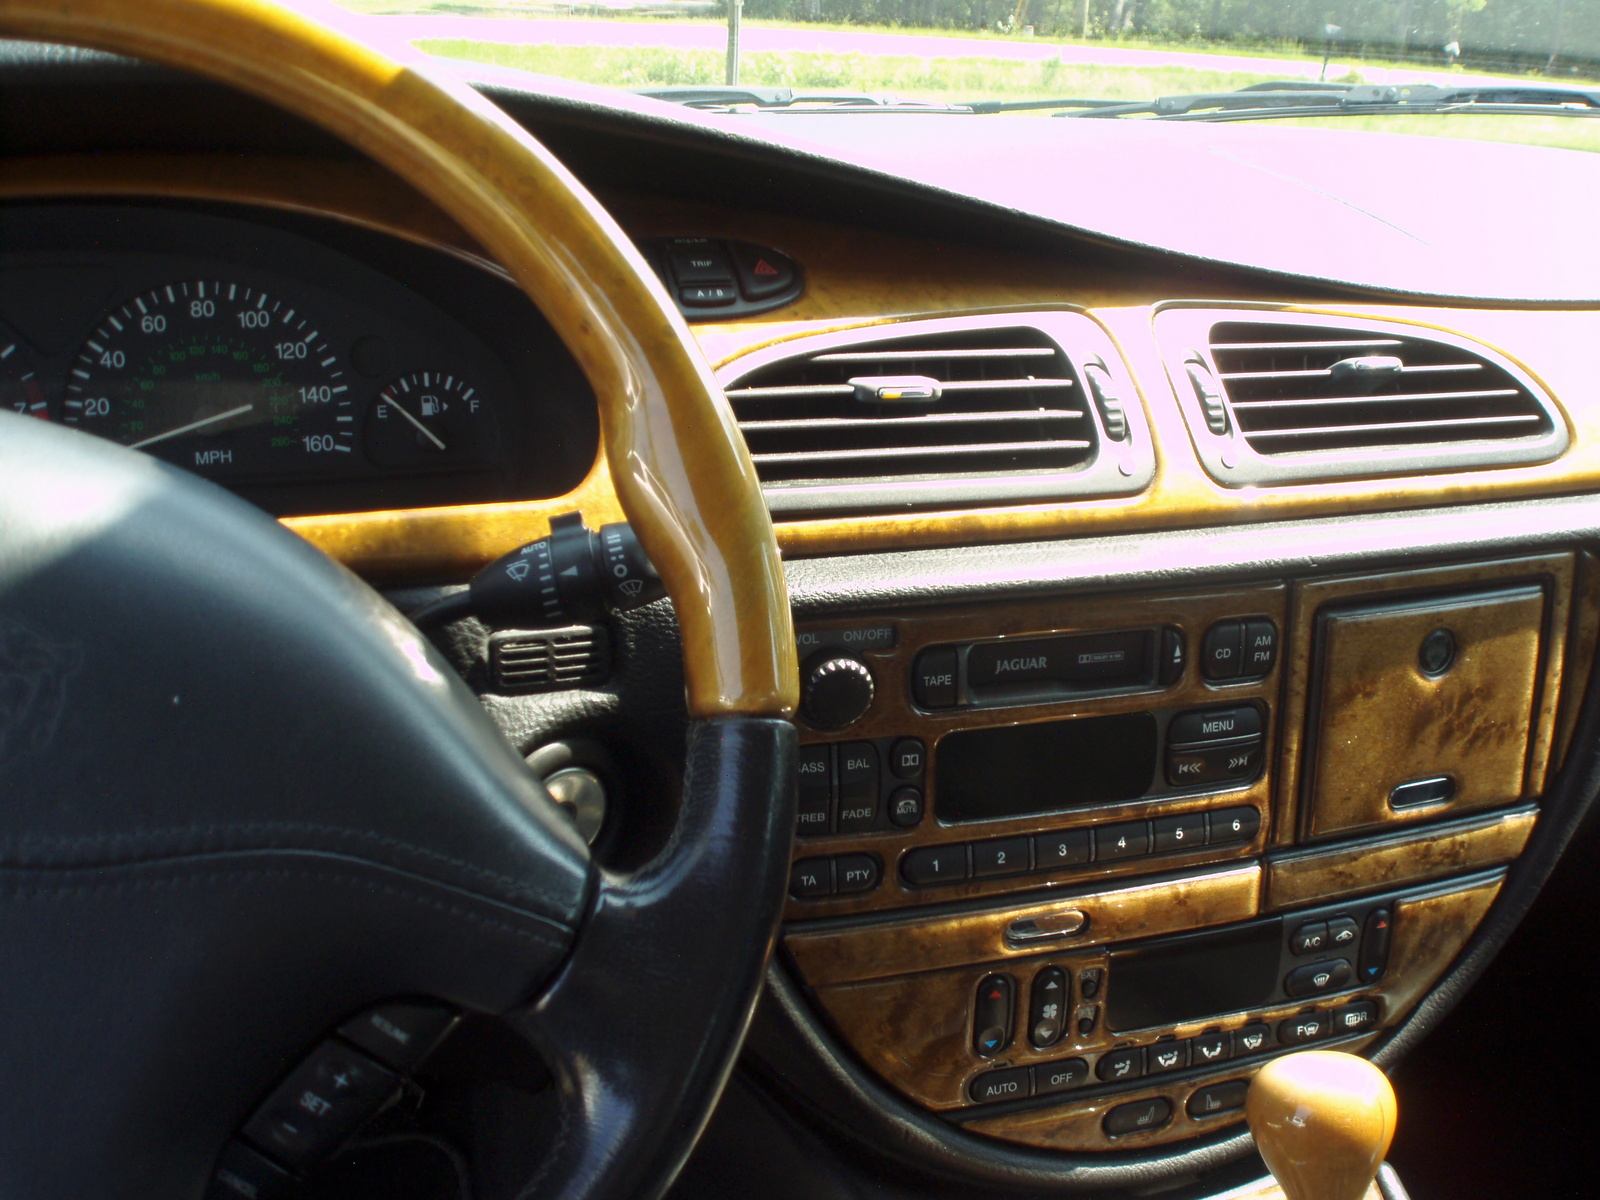 wiring diagram for jaguar xf  home and furnitures reference wiring diagram for jaguar xf pics photos picture of 2000 jaguar s type 3 0